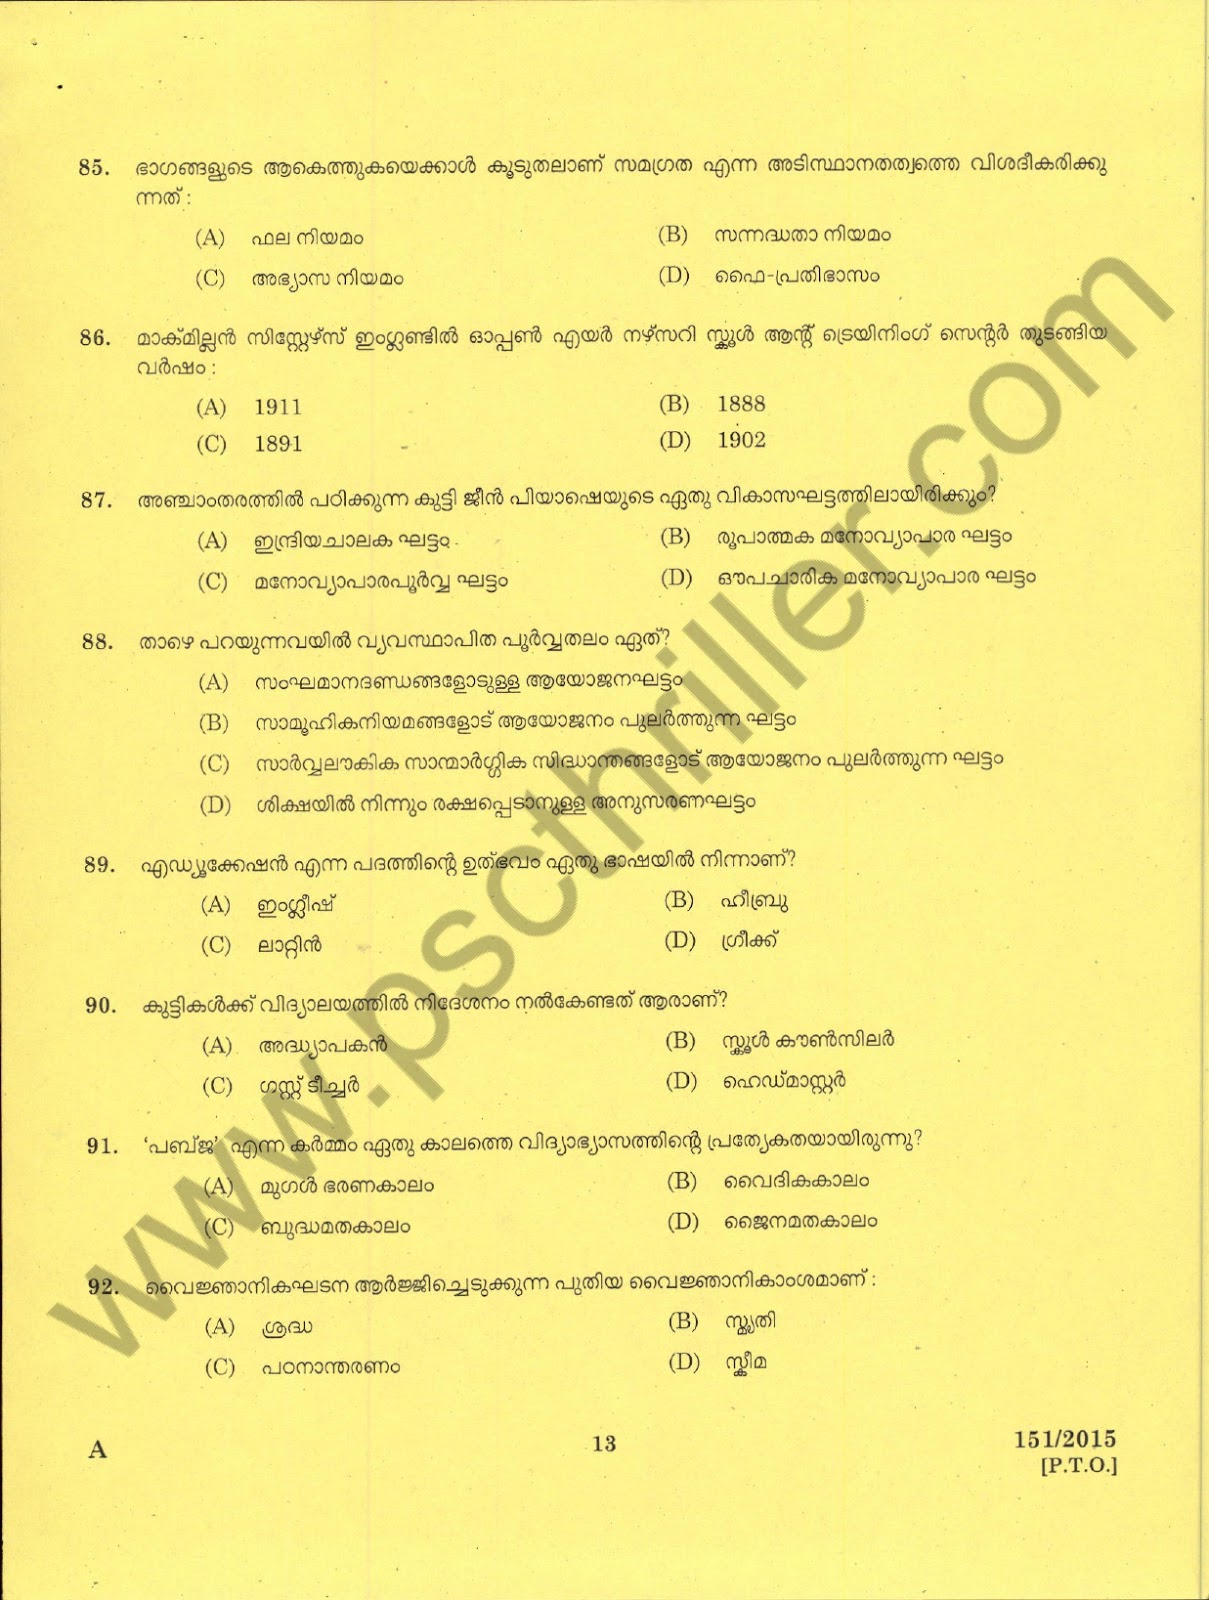 PSC THRILLER: Nursery School Teacher- Question Paper with